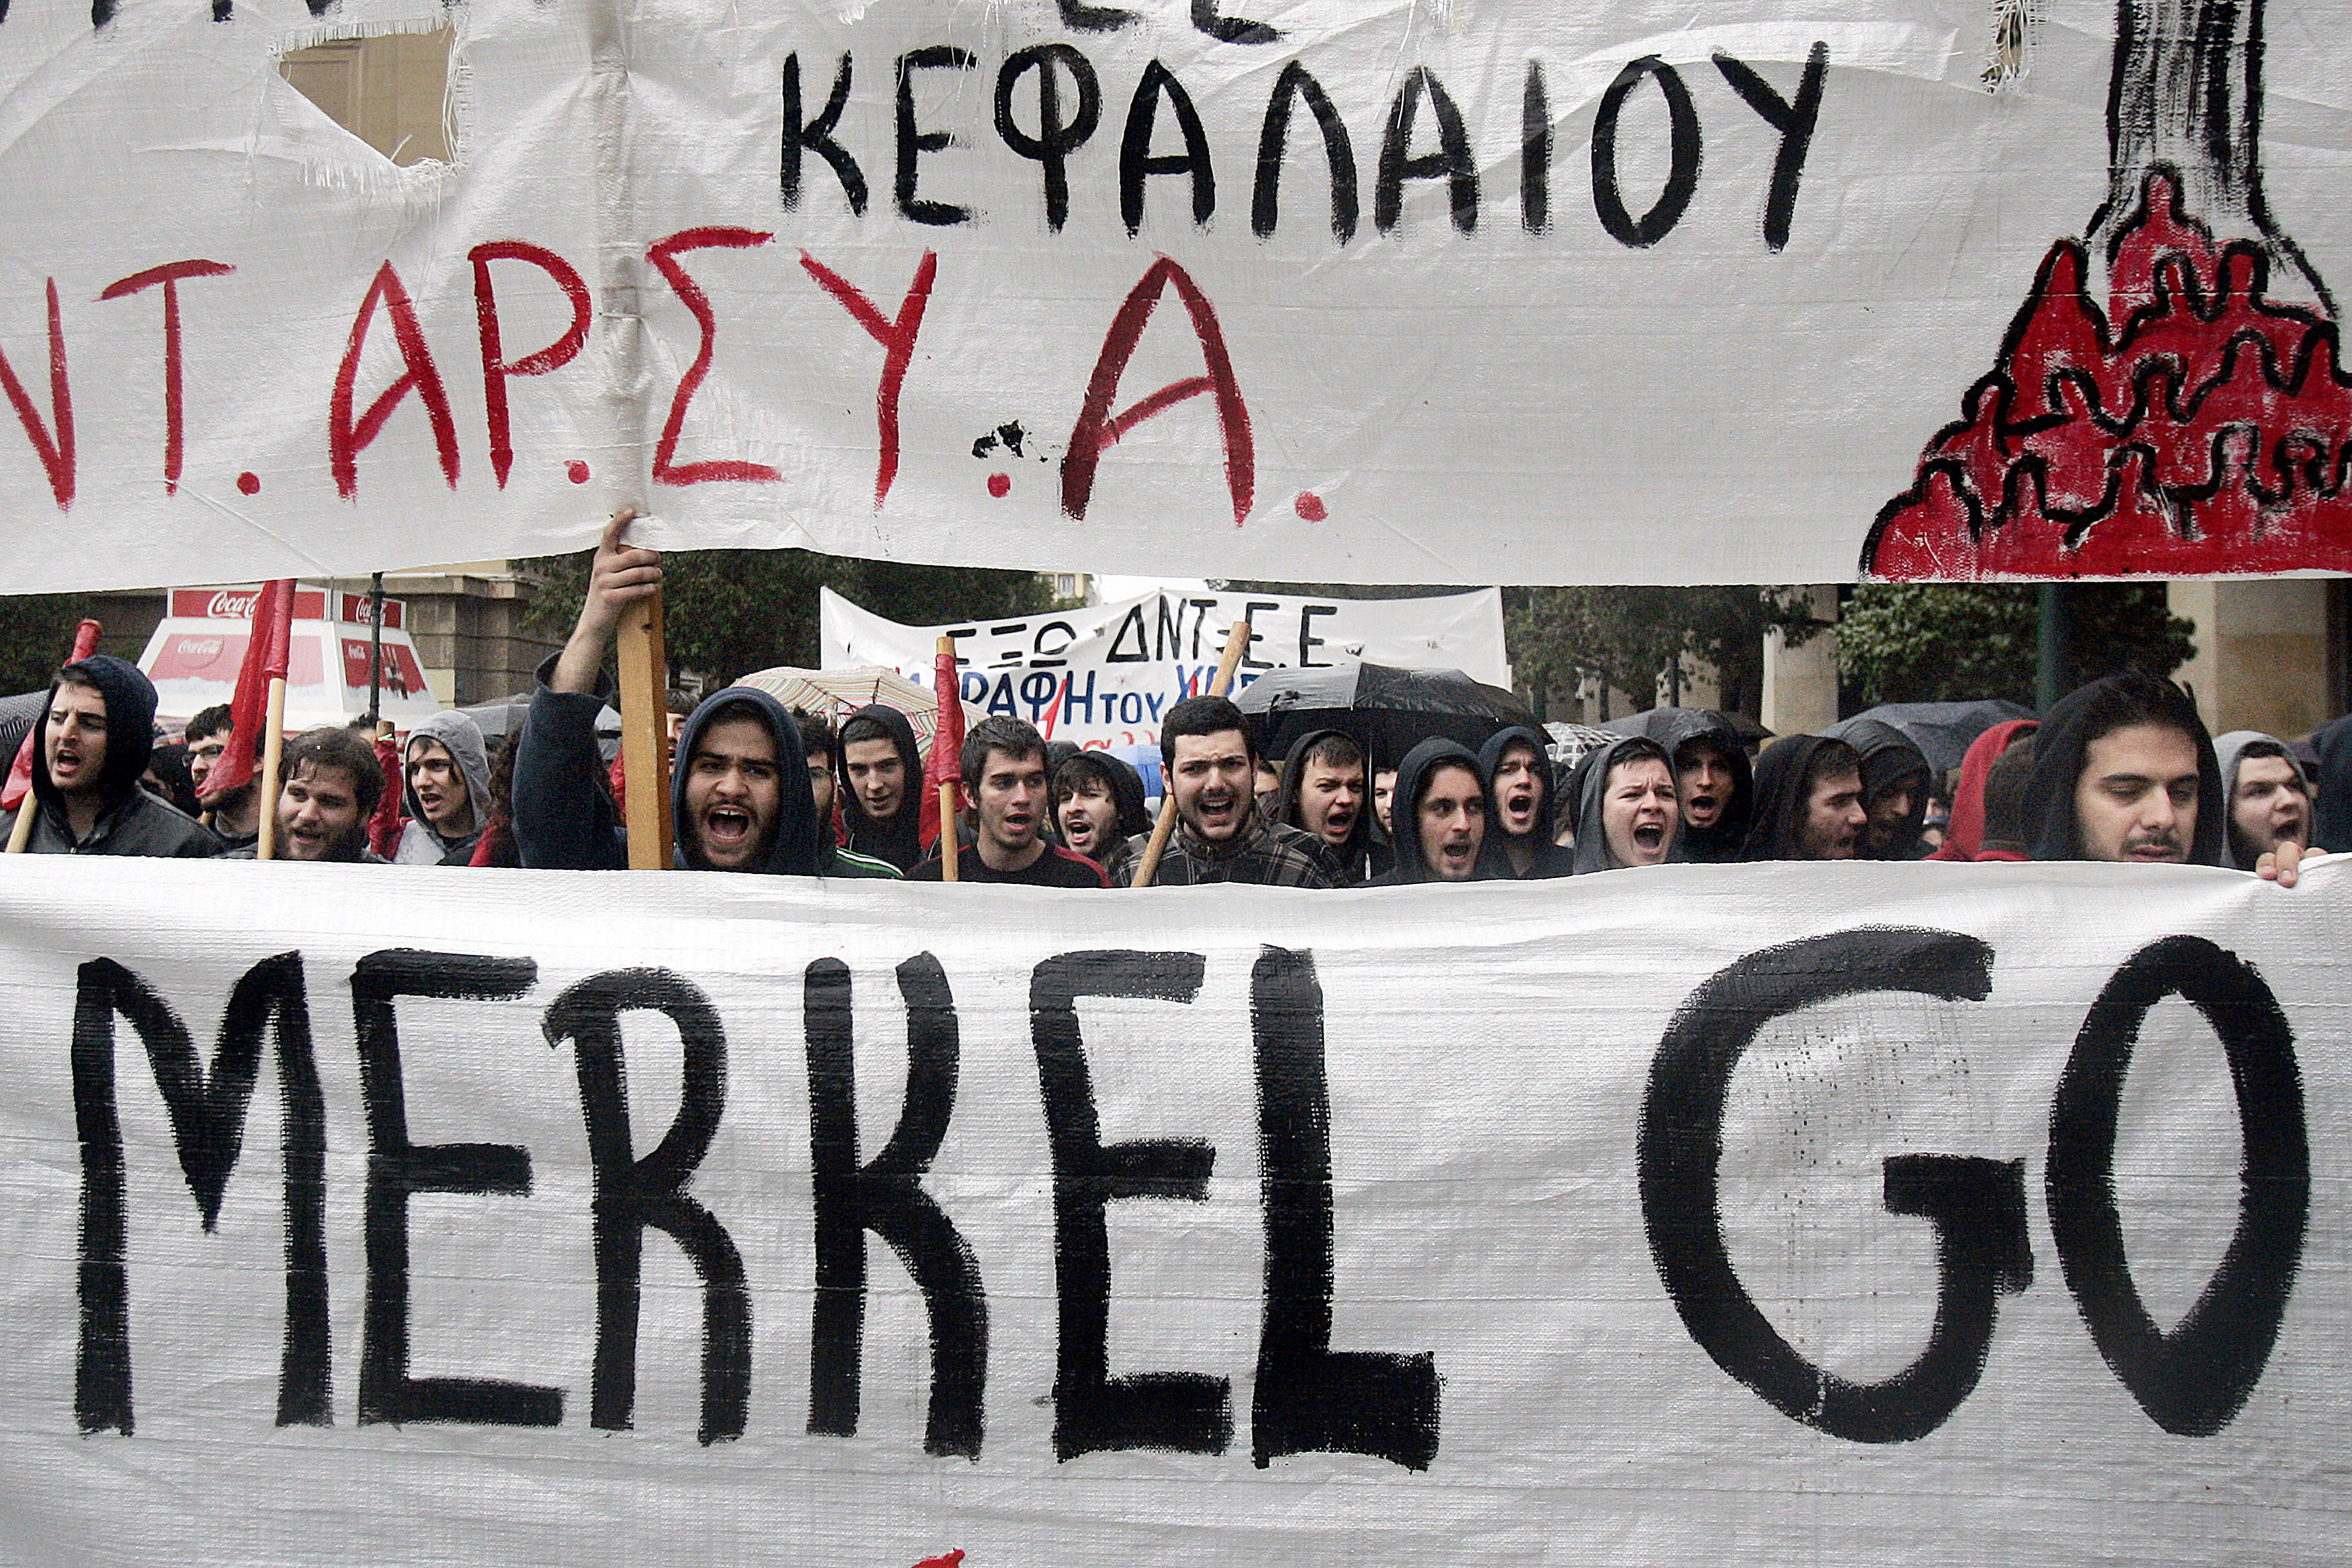 Protesters hold a banner as they march during a demonstration against the visit of Germany's Chancellor Angela Merkel on April 11, 2014 in Athens.